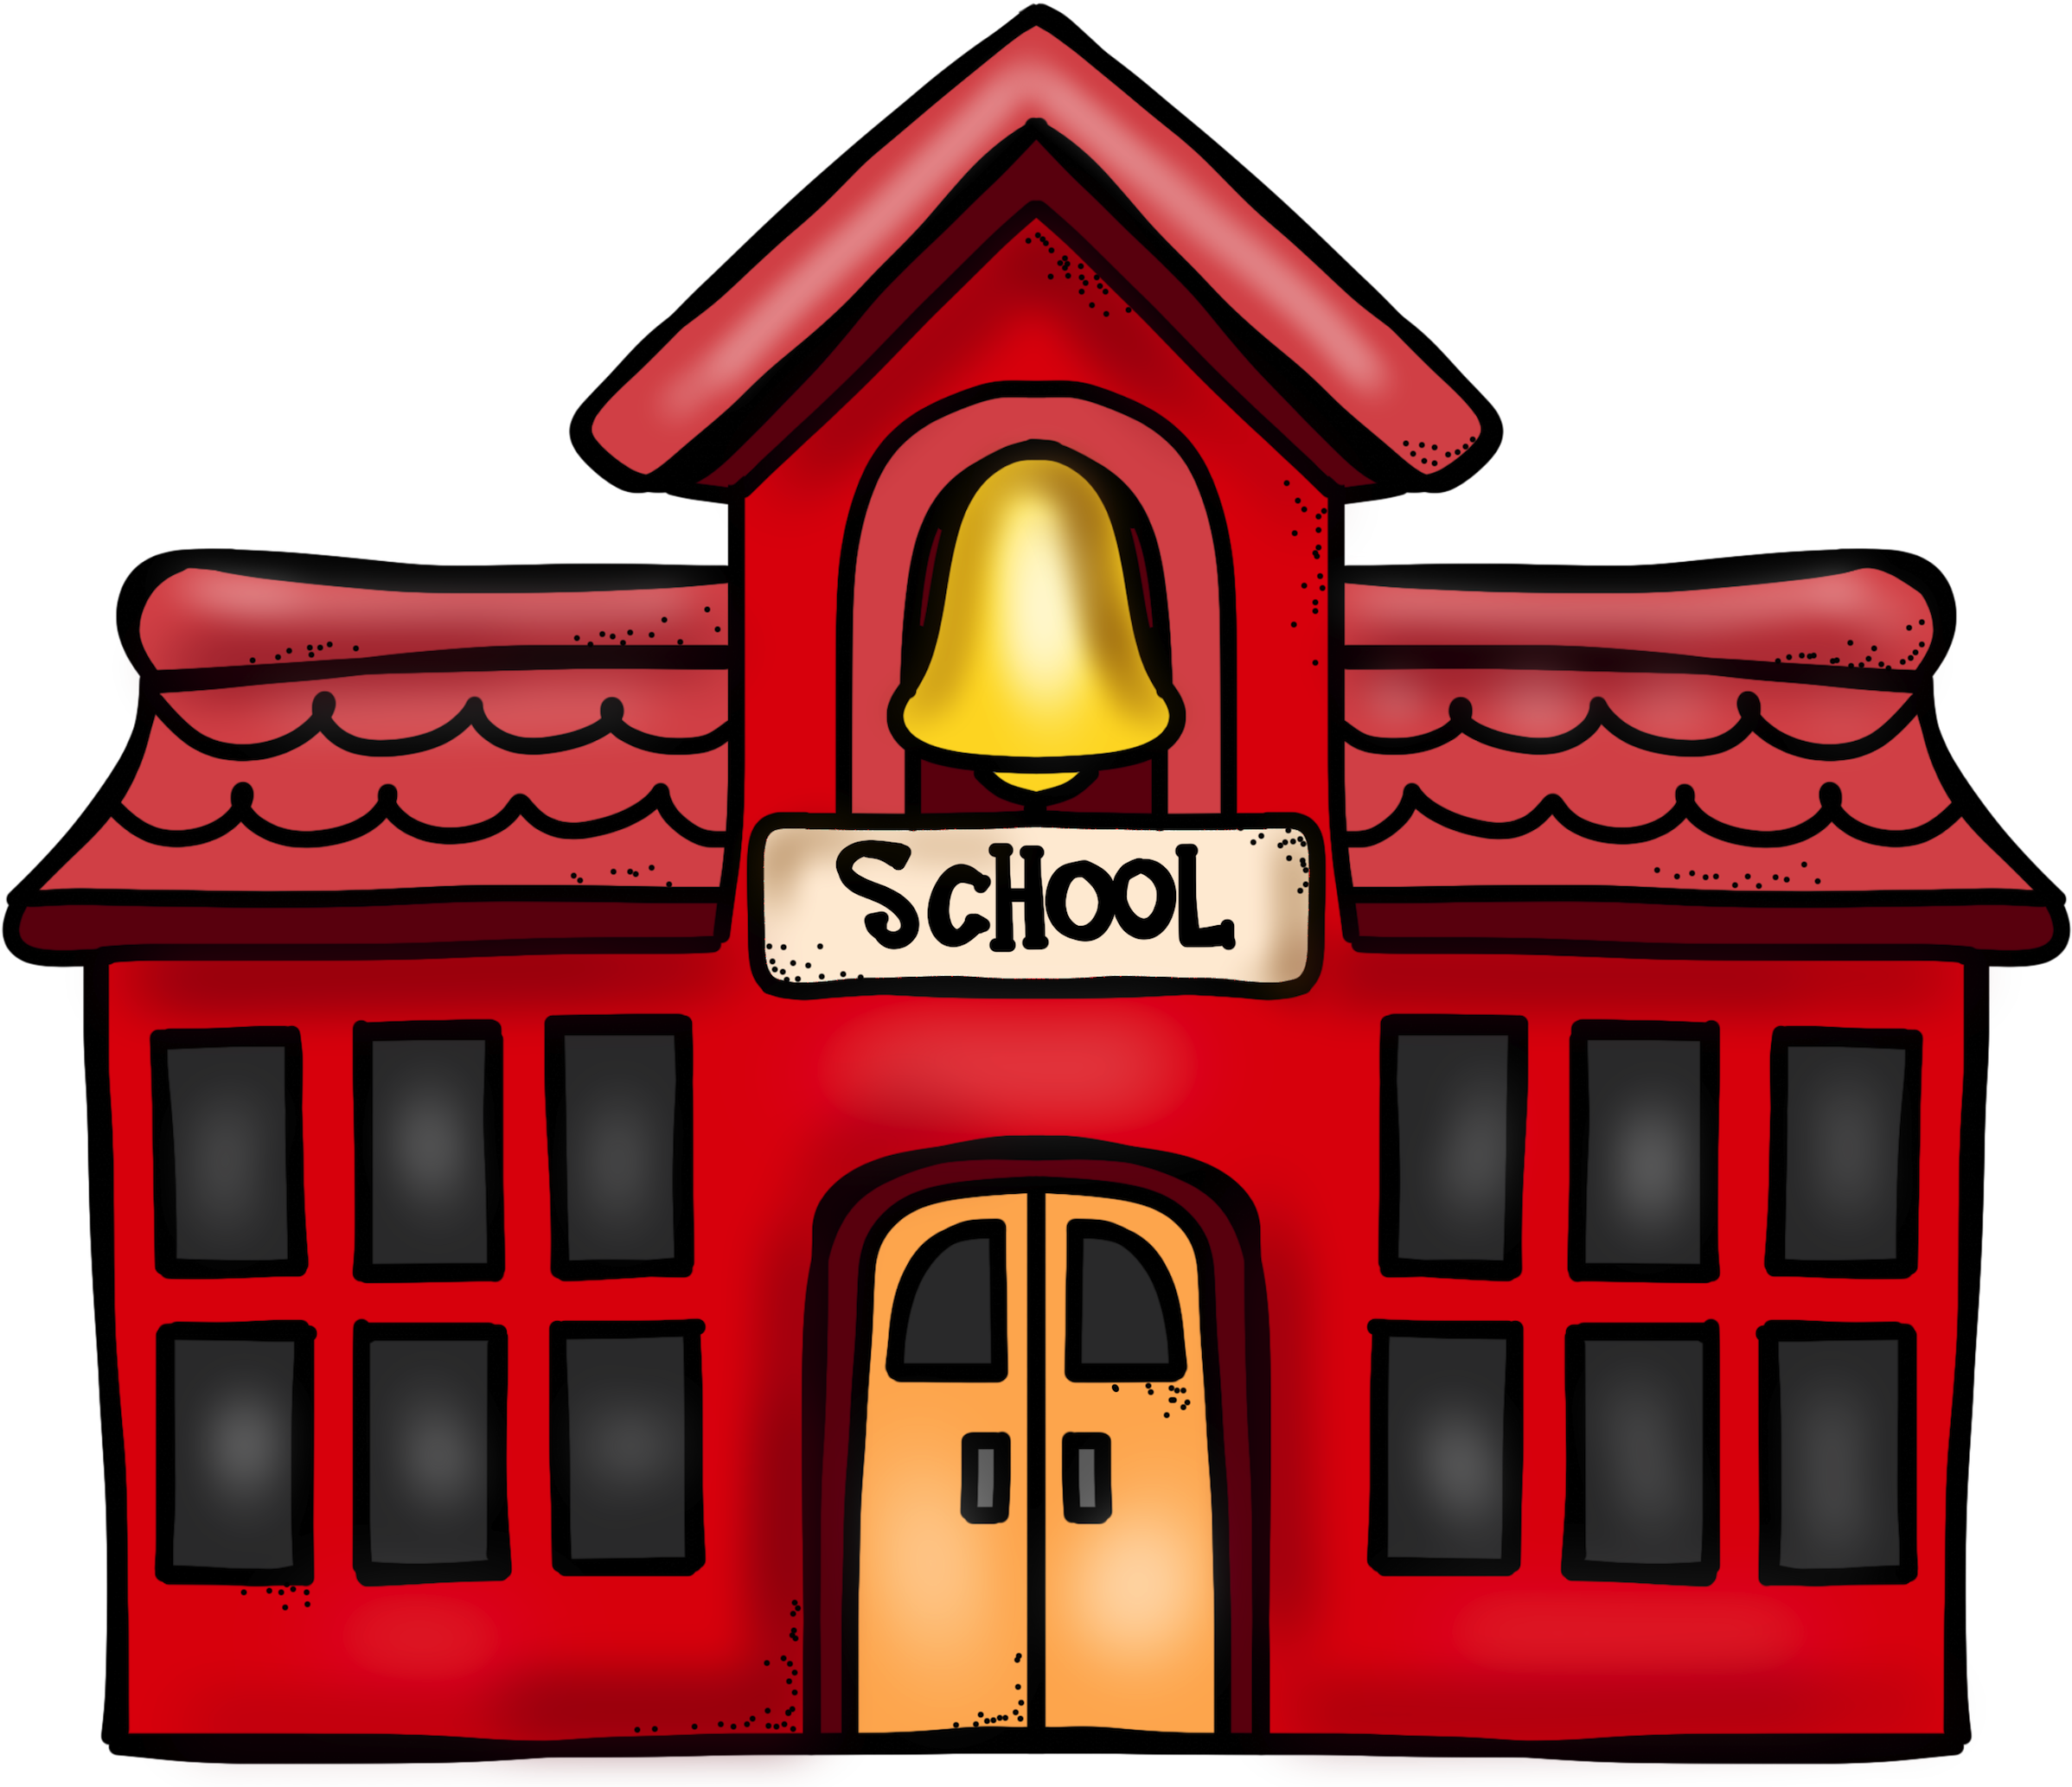 Download School Building Cartoon Png PNG Image with No Background -  PNGkey.com